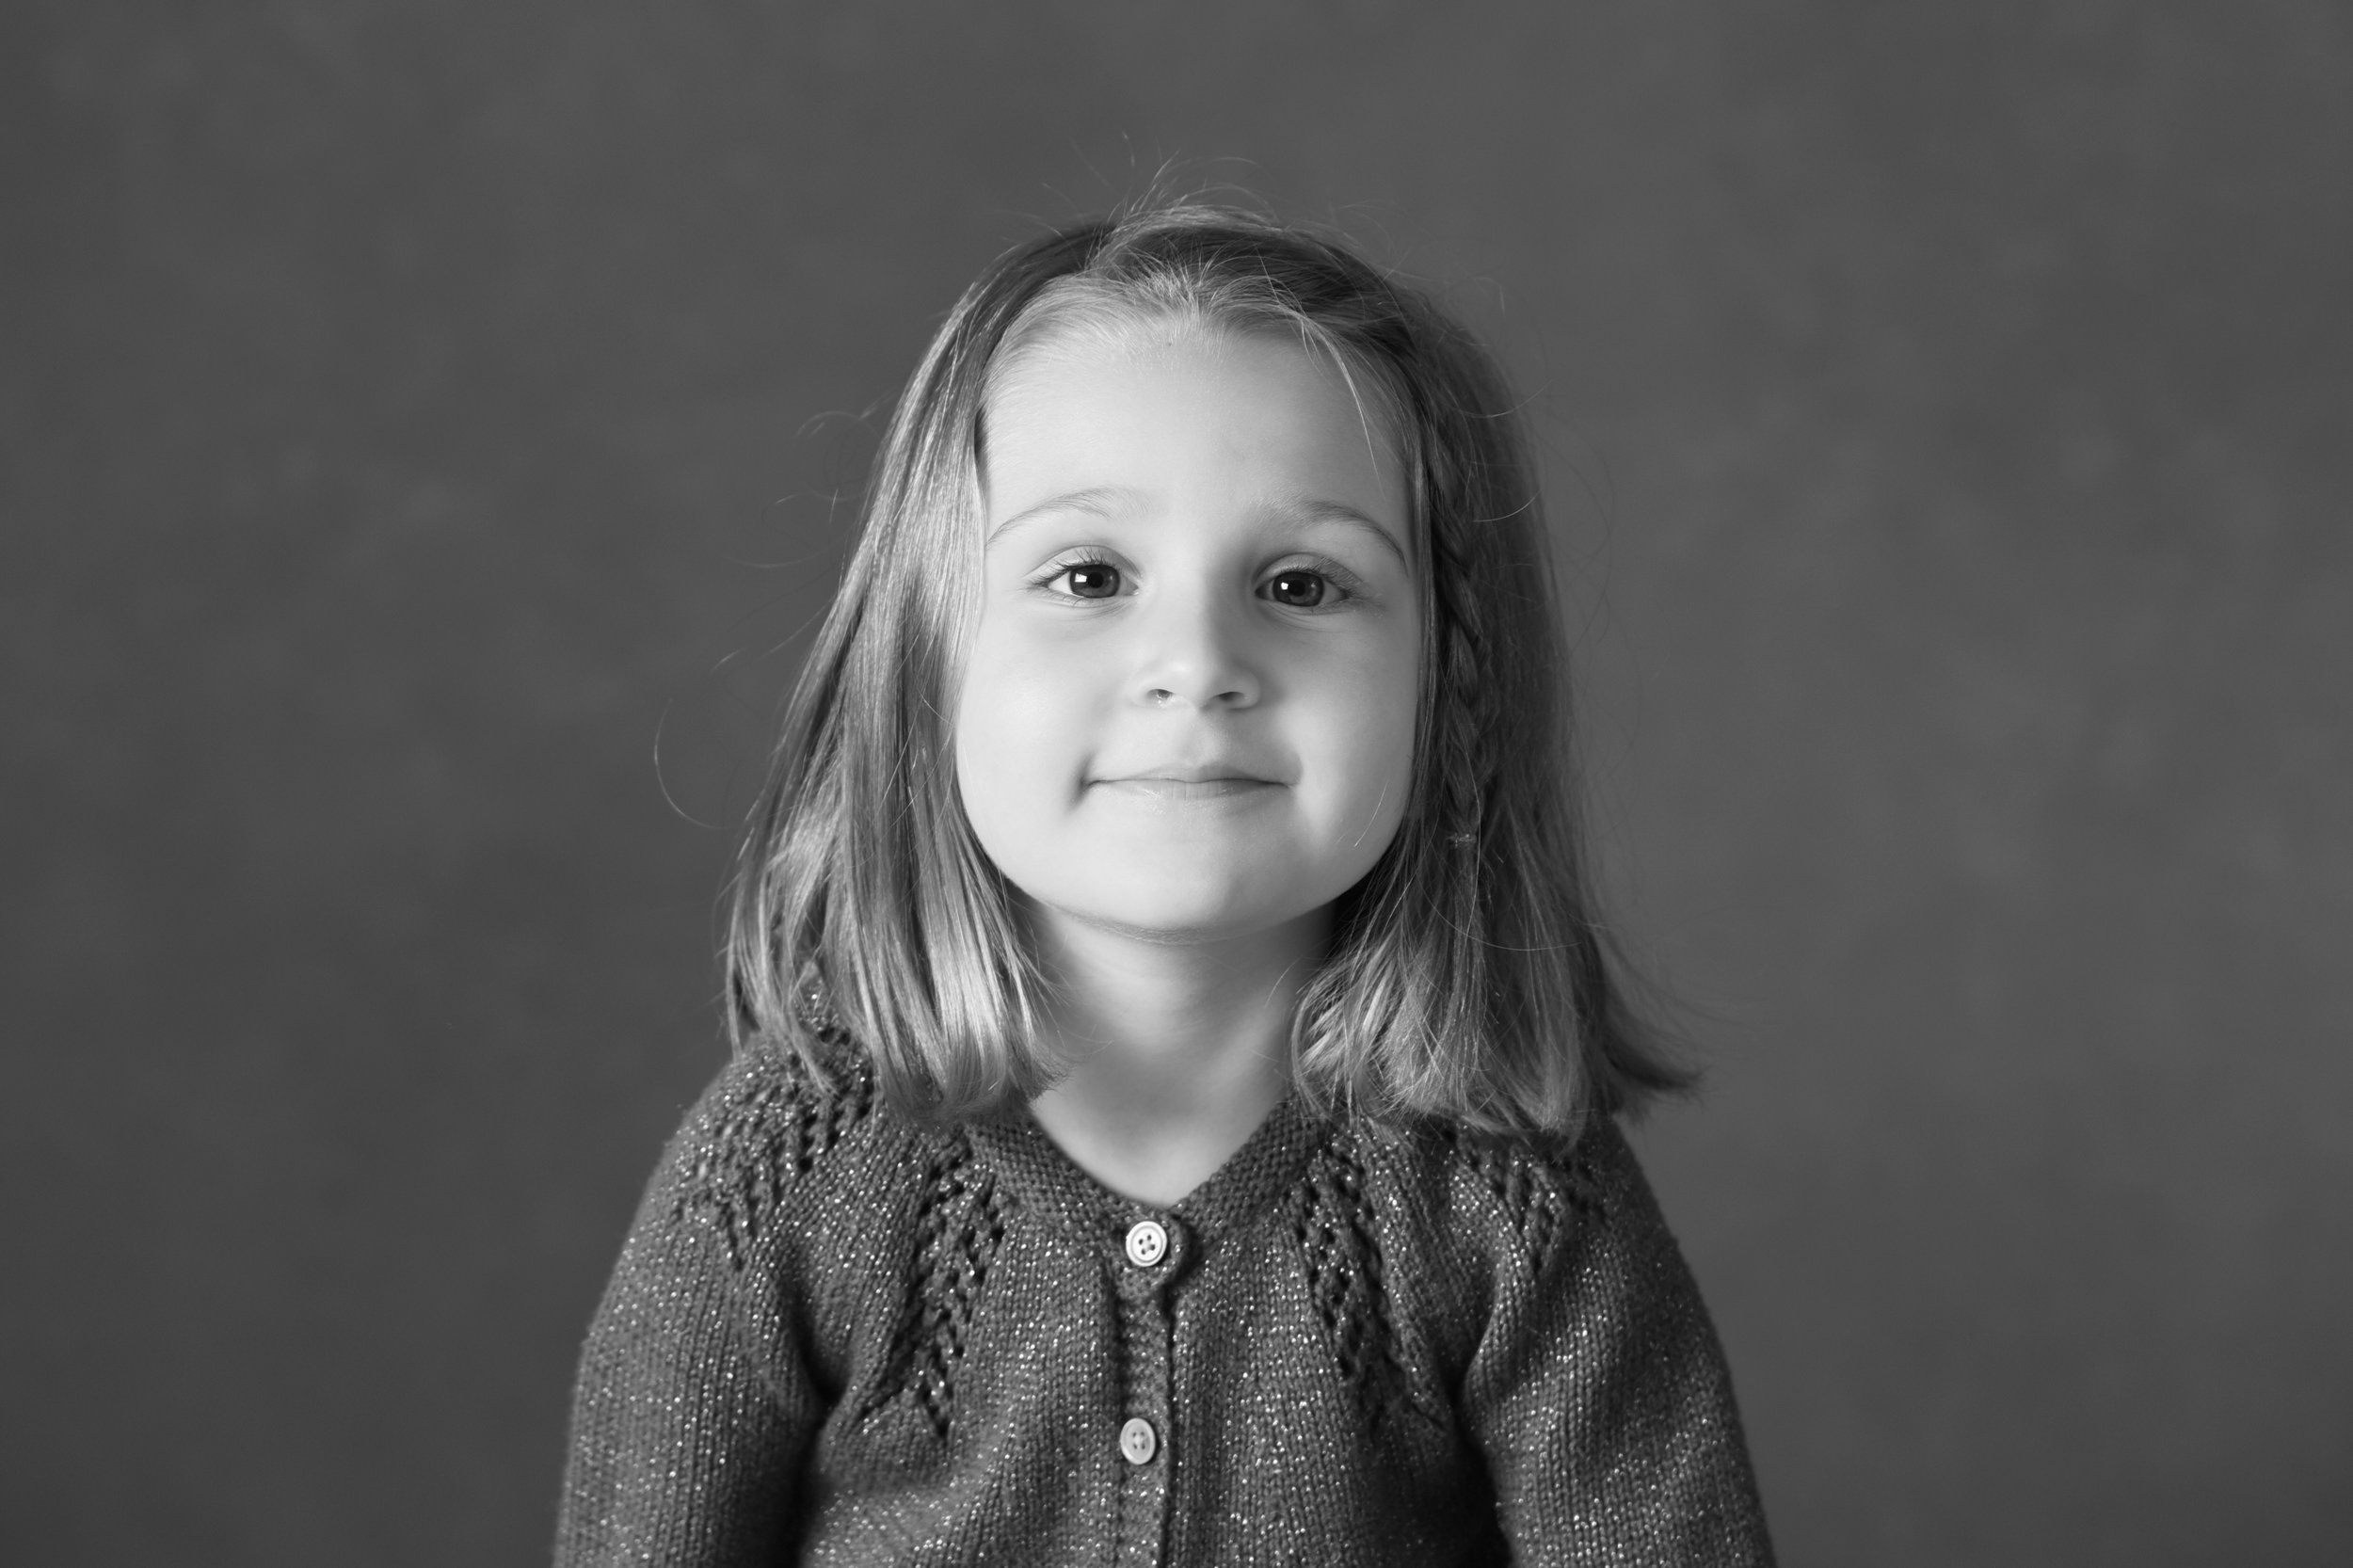 - Yes! Enter me to win a Birthday Portrait Experience - a monthly birthday celebration at Linnea Portrait Studio.